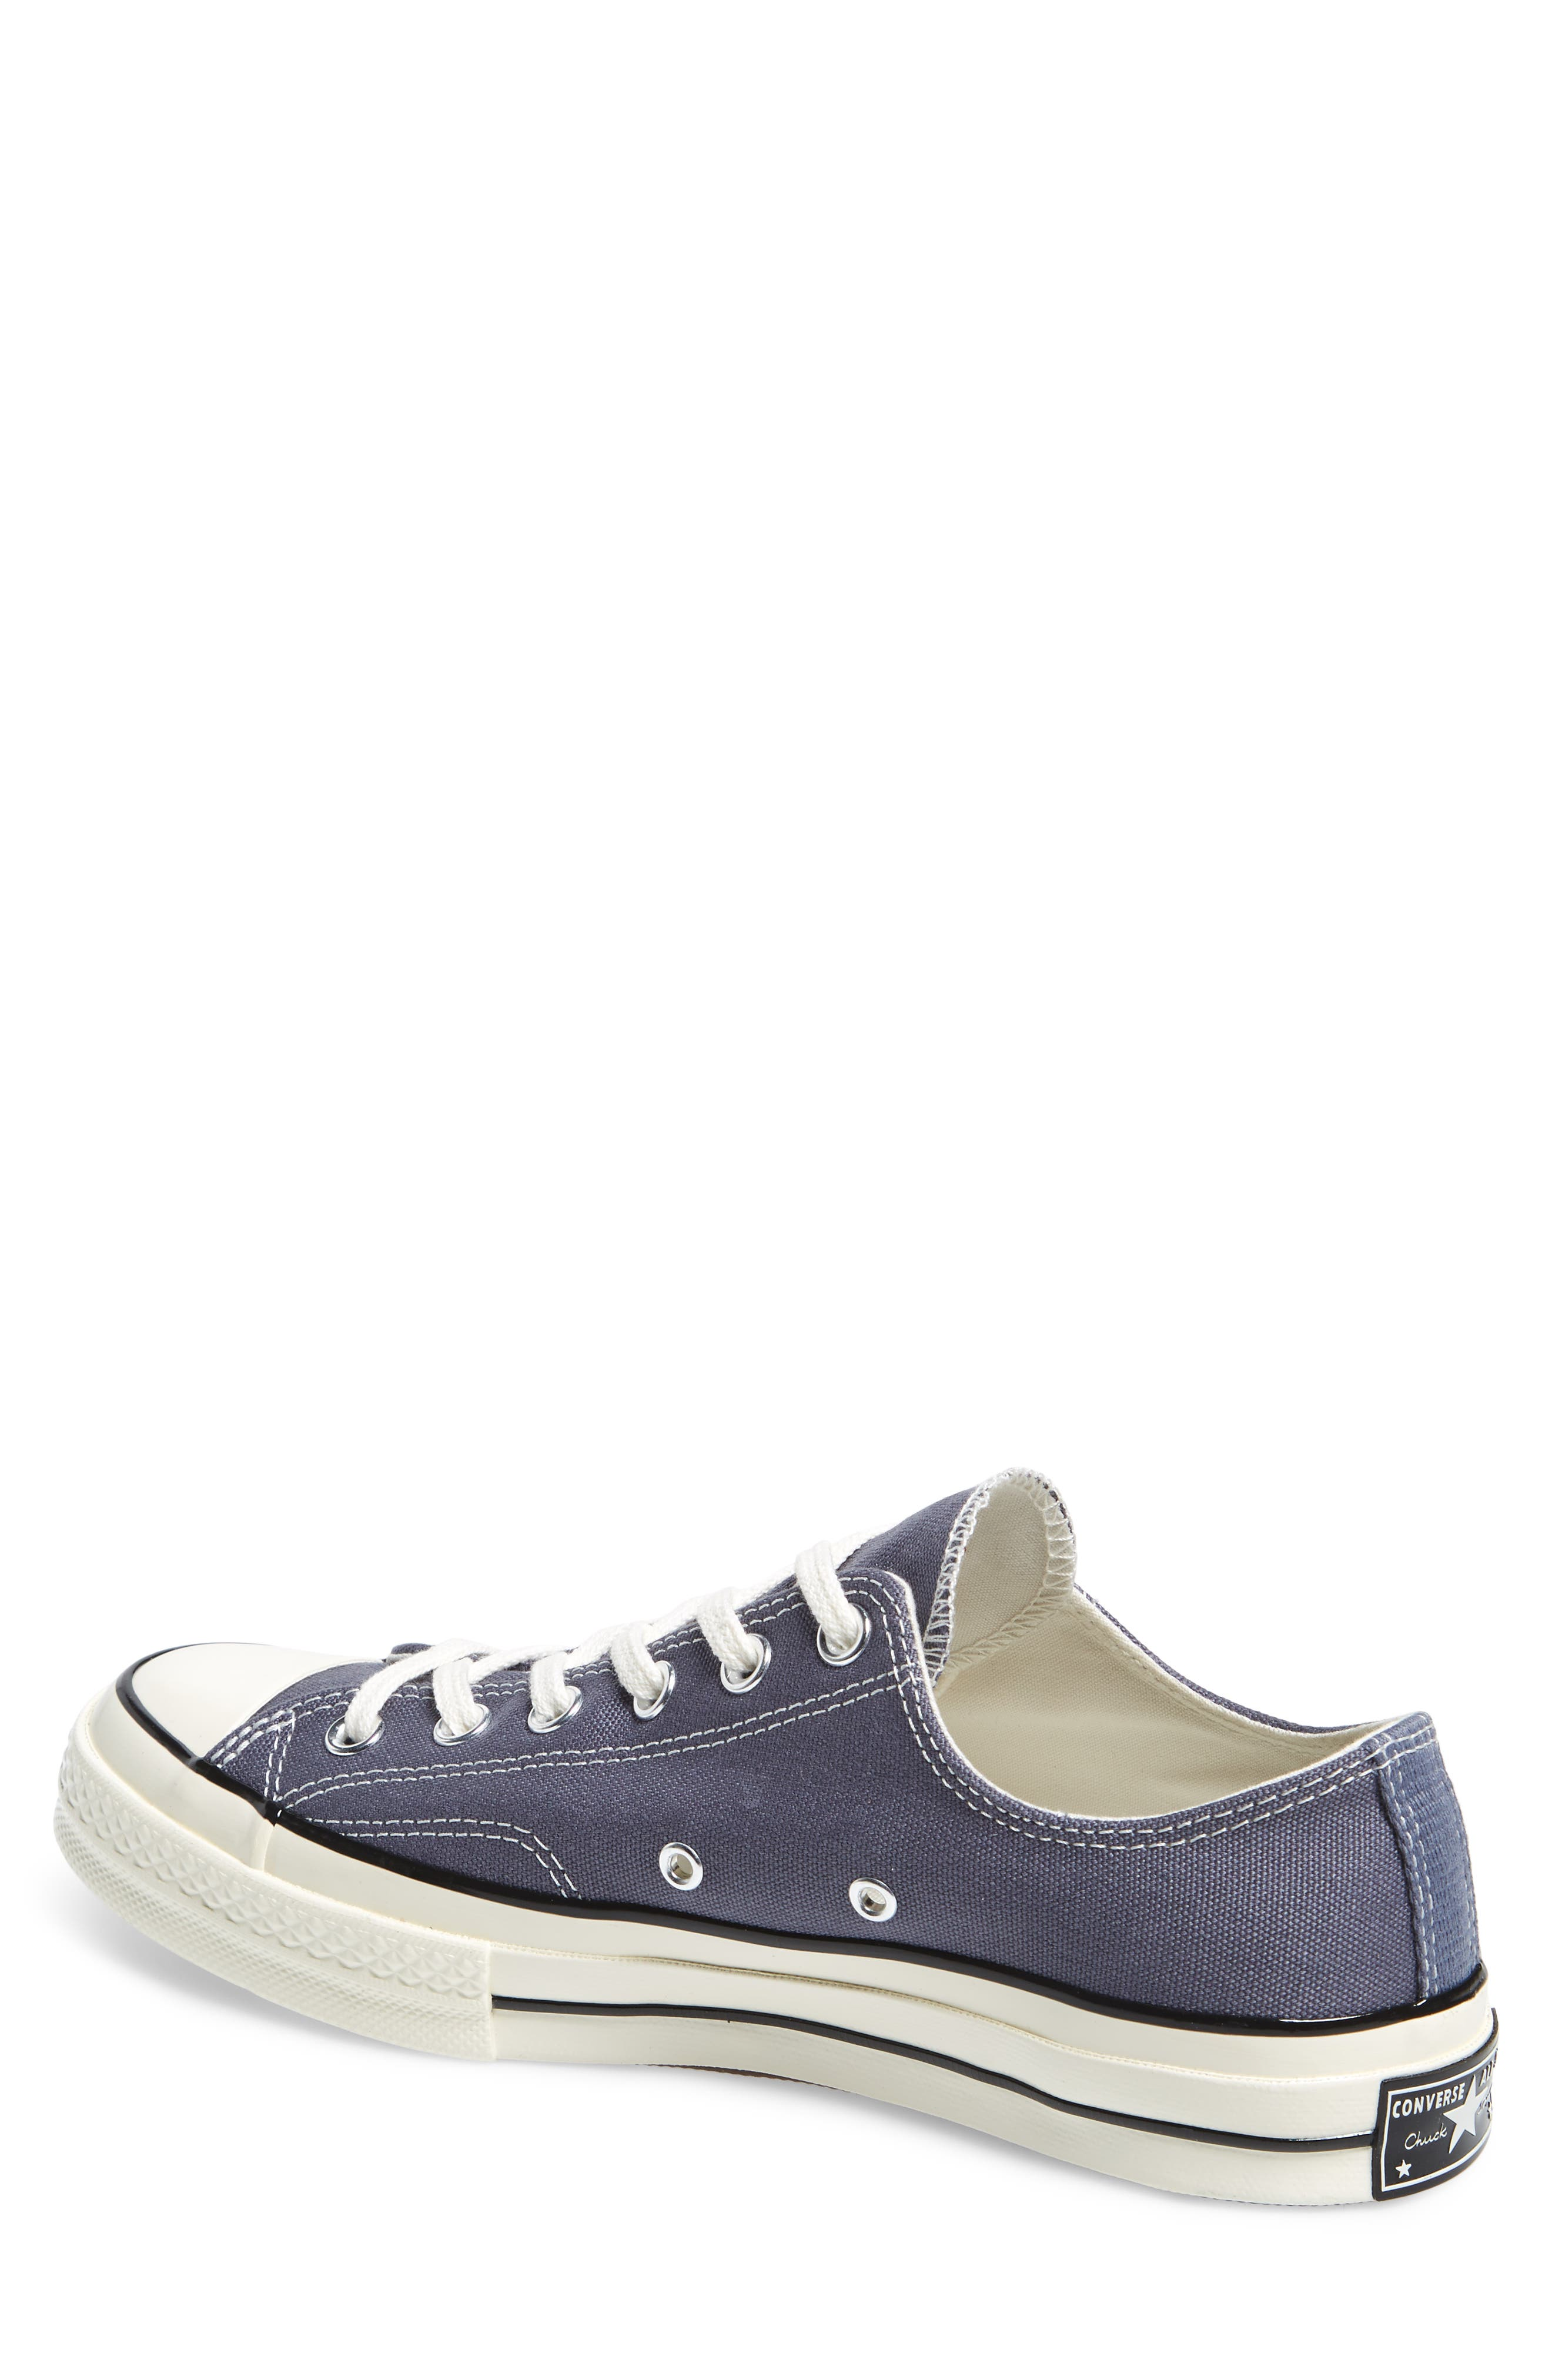 Chuck Taylor<sup>®</sup> All Star<sup>®</sup> 70 Heritage Sneaker,                             Alternate thumbnail 2, color,                             Light Carbon Canvas